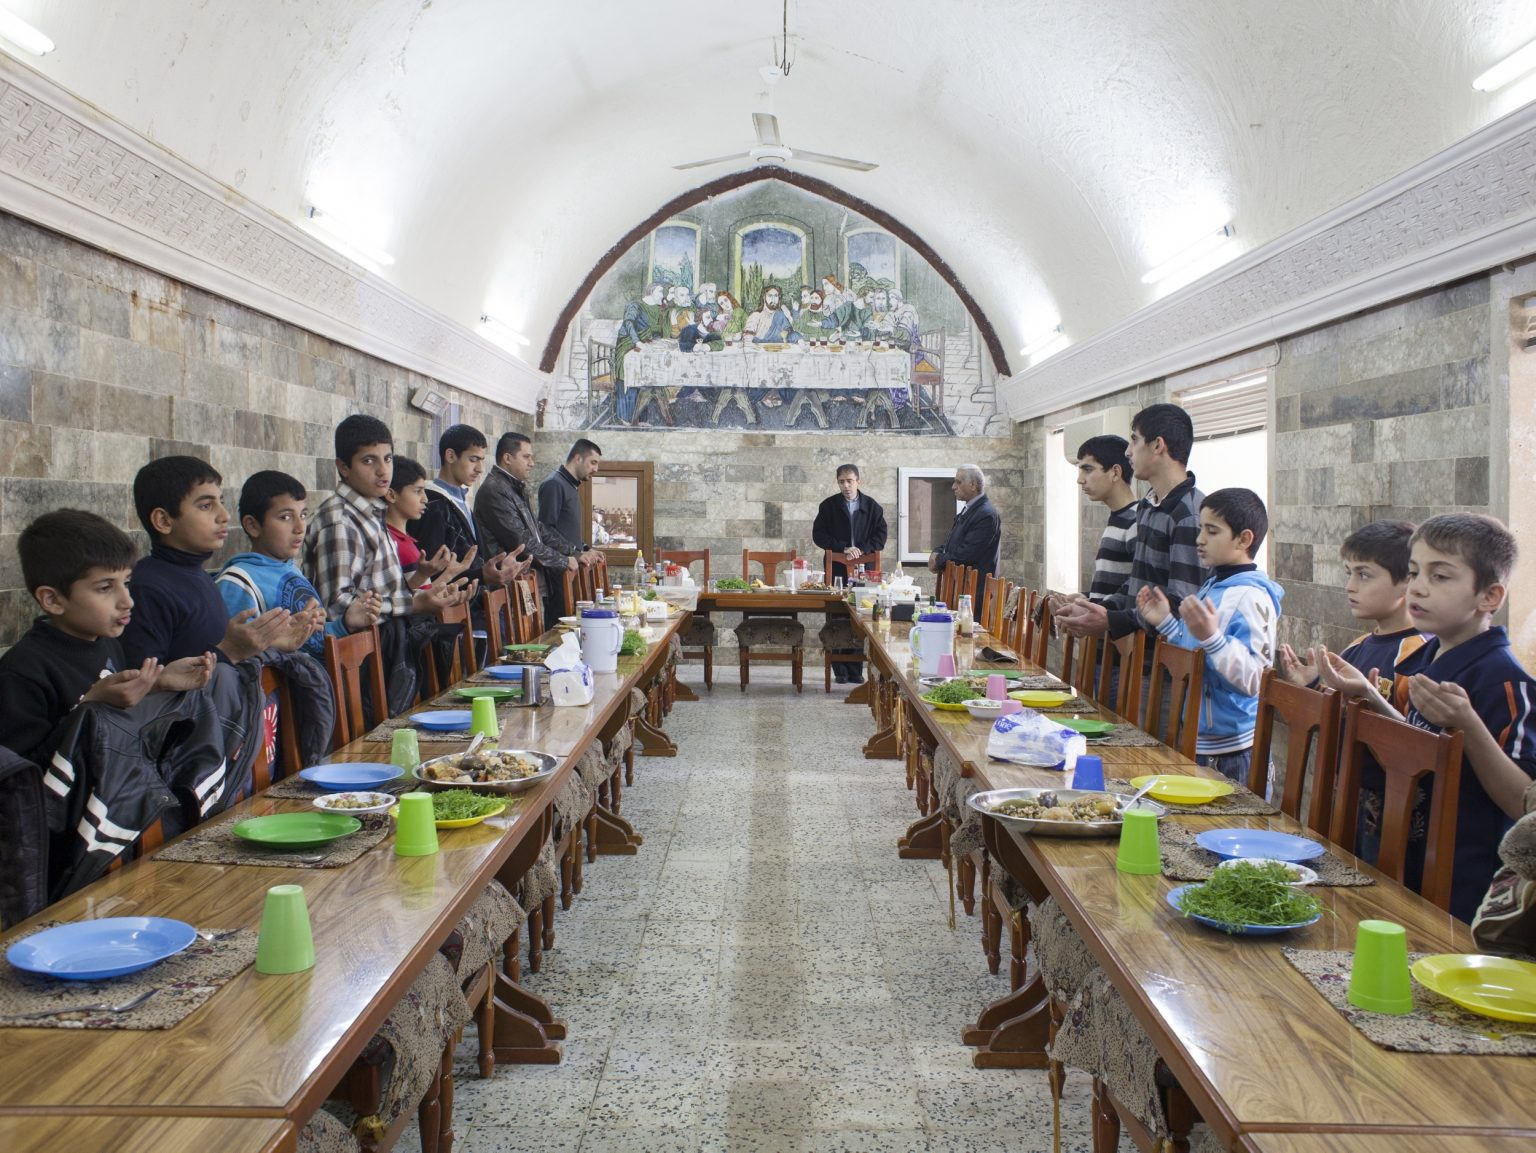 Children having lunch in the orphanage in the Monastery of the Virgin Mary in Al Qosh.  The orphanage was opened in 1949 and at the moment 19 boys between 4 and 16 years old are living in there.